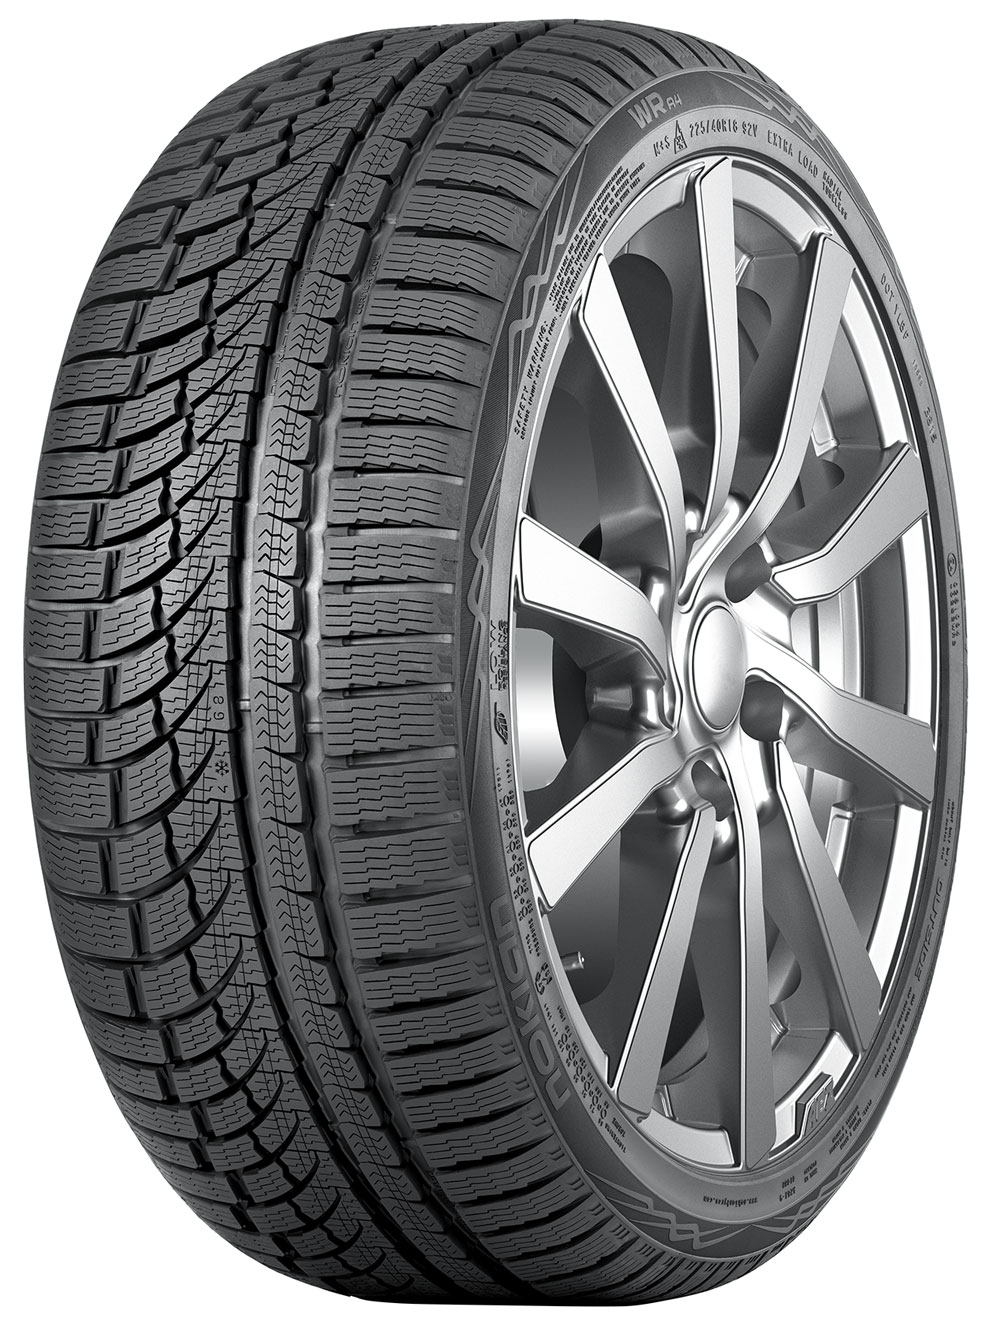 Gomme Nuove Nokian 225/55 R17 101V WR A4 XL M+S pneumatici nuovi Invernale